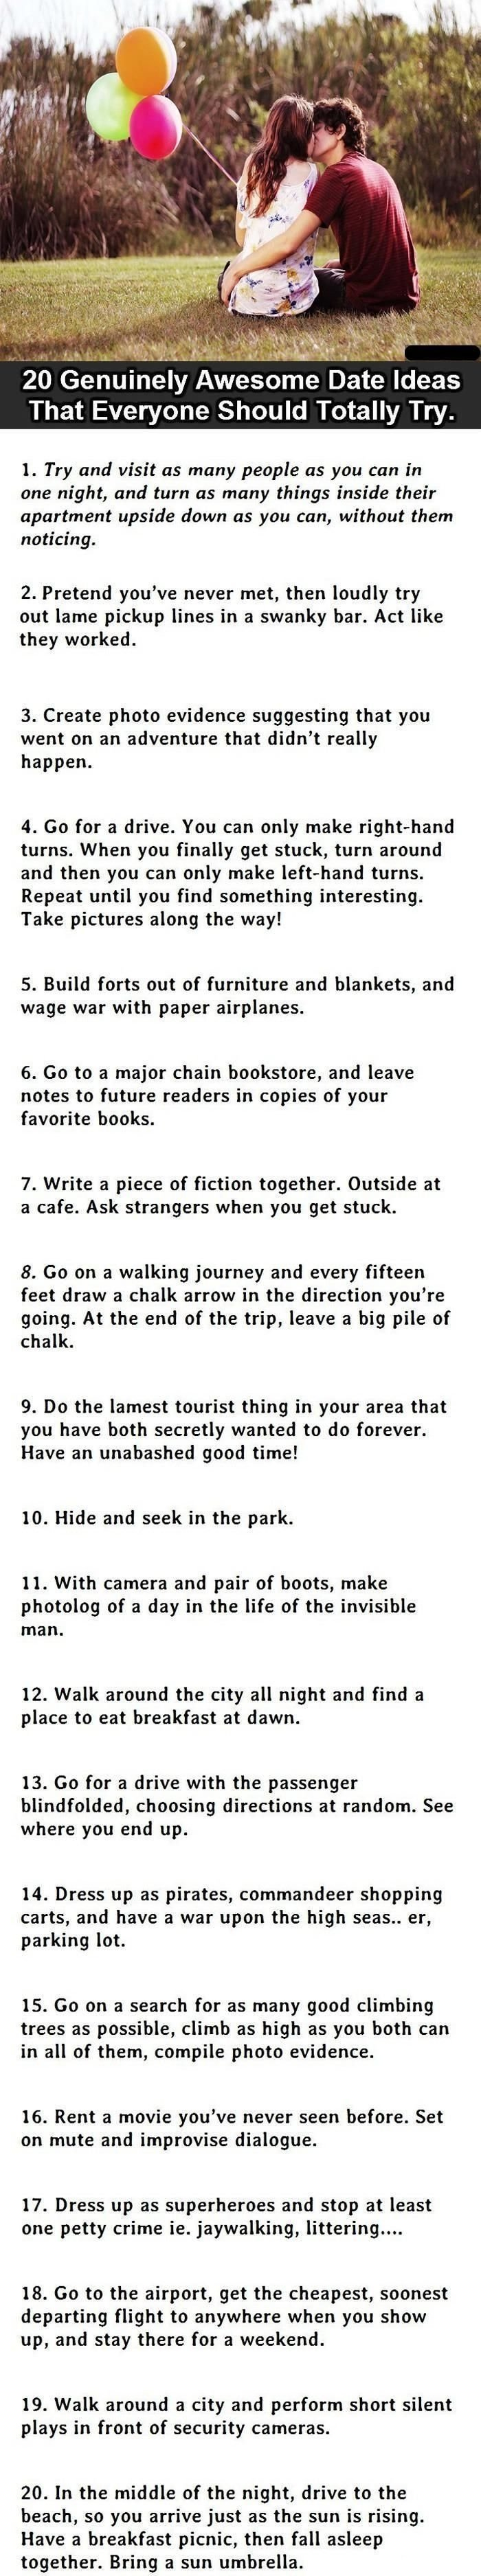 10 Stylish Cute Date Ideas For Your Boyfriend 186 best dating ideas images on pinterest families relationships 2020